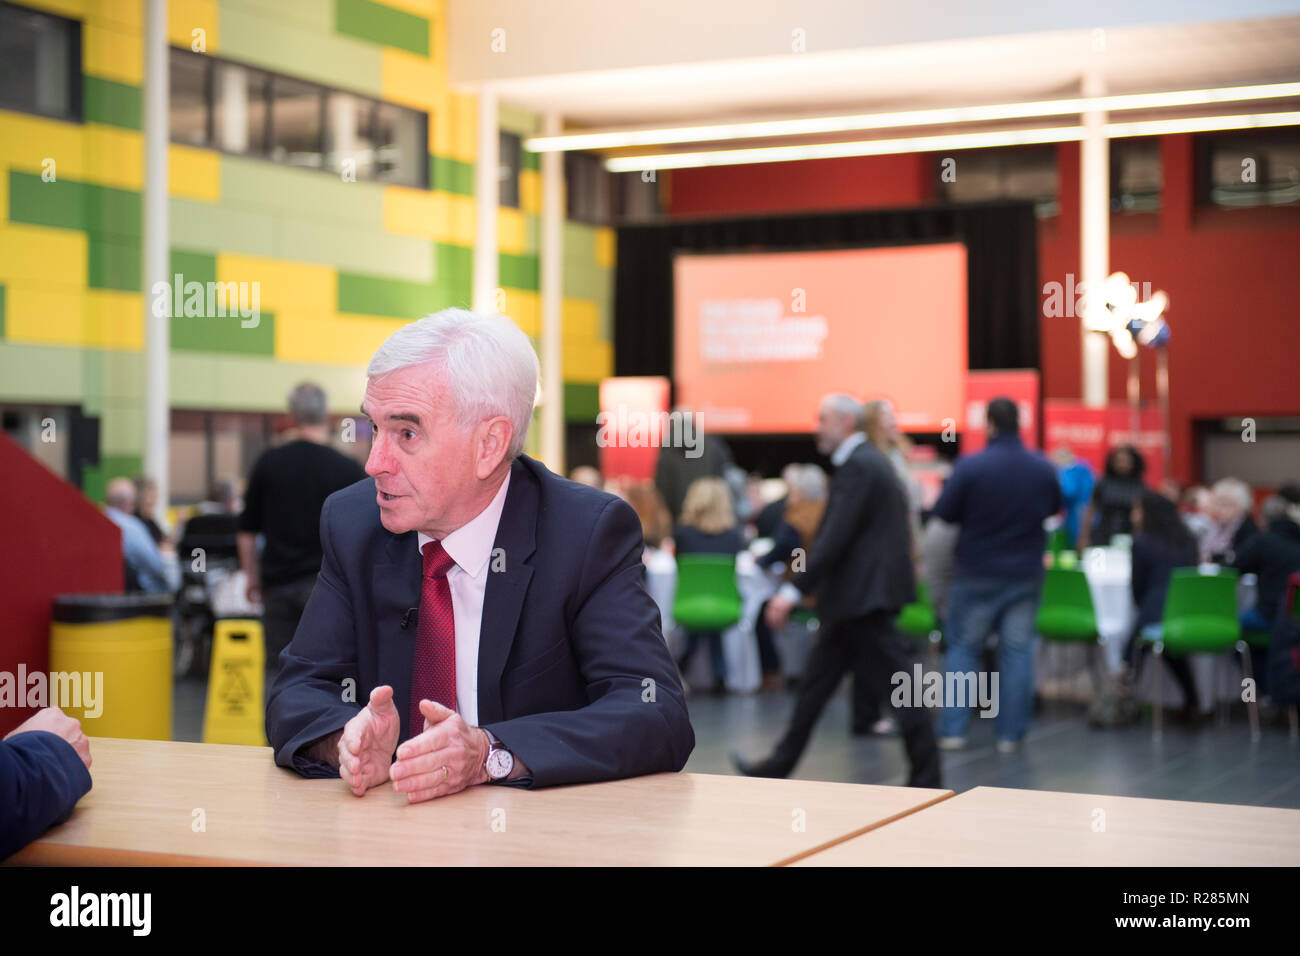 Mansfield, Nottinghamshire, England, UK. 17th November 2018. John McDonnell, Shadow Chancellor speaking in Mansfield, about the new policy 'The Road To Building The Economy'. These are a series of events looking at the impact of austerity on towns and at the tools and policies Labour will use to rebuild the economy. Alan Beastall/Alamy Live News Stock Photo